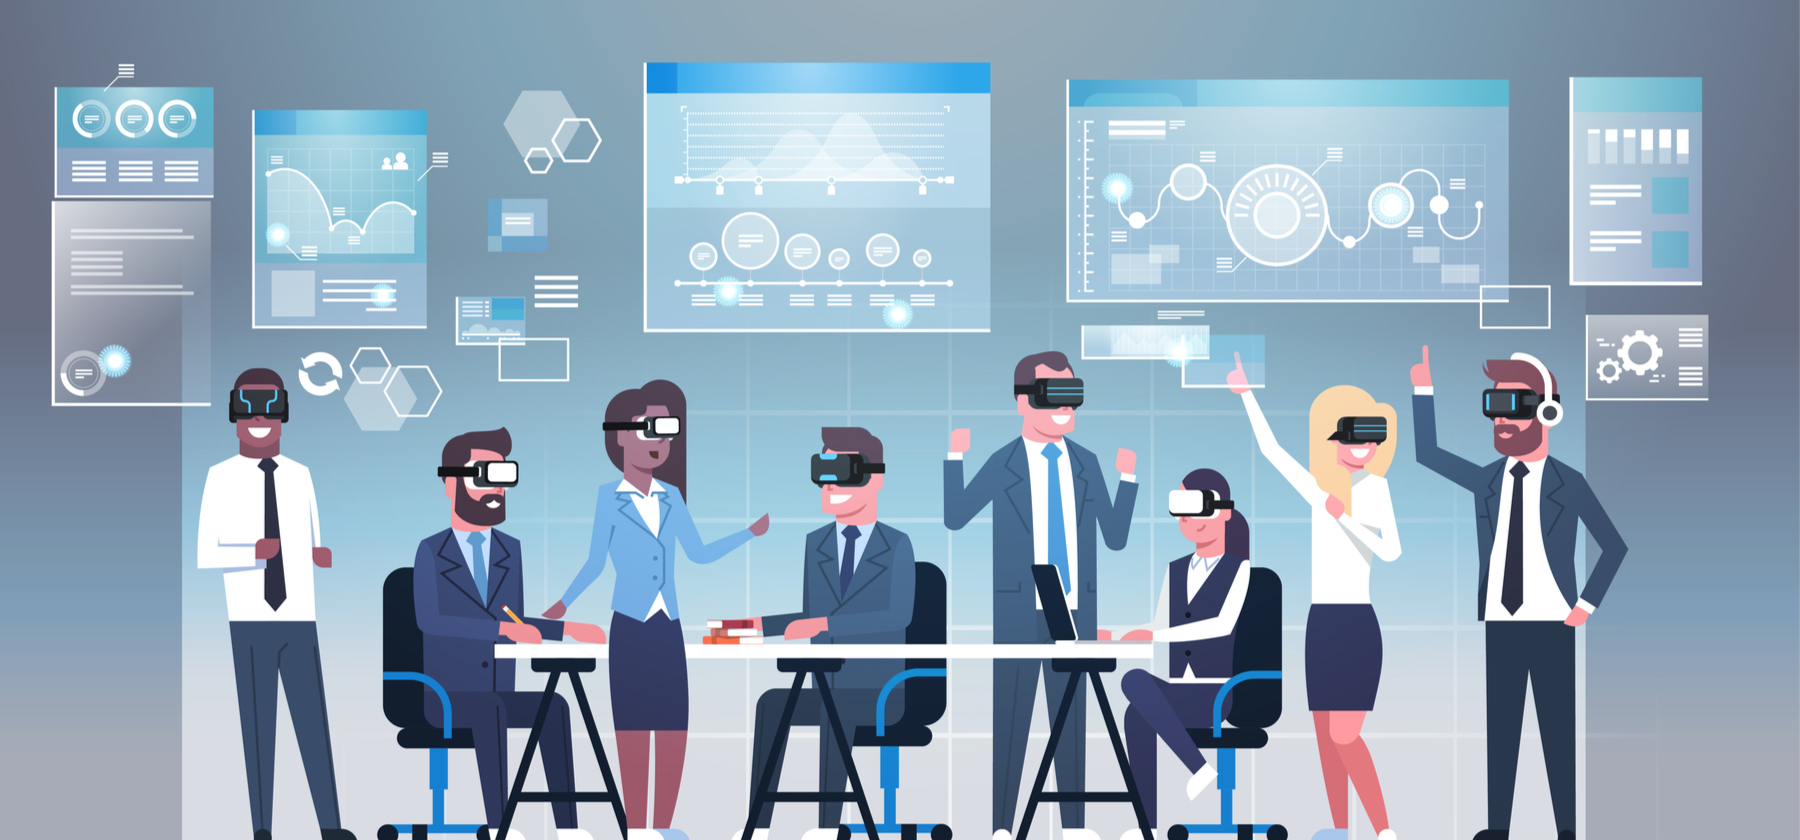 How to Use VR Technologies for Medical Events